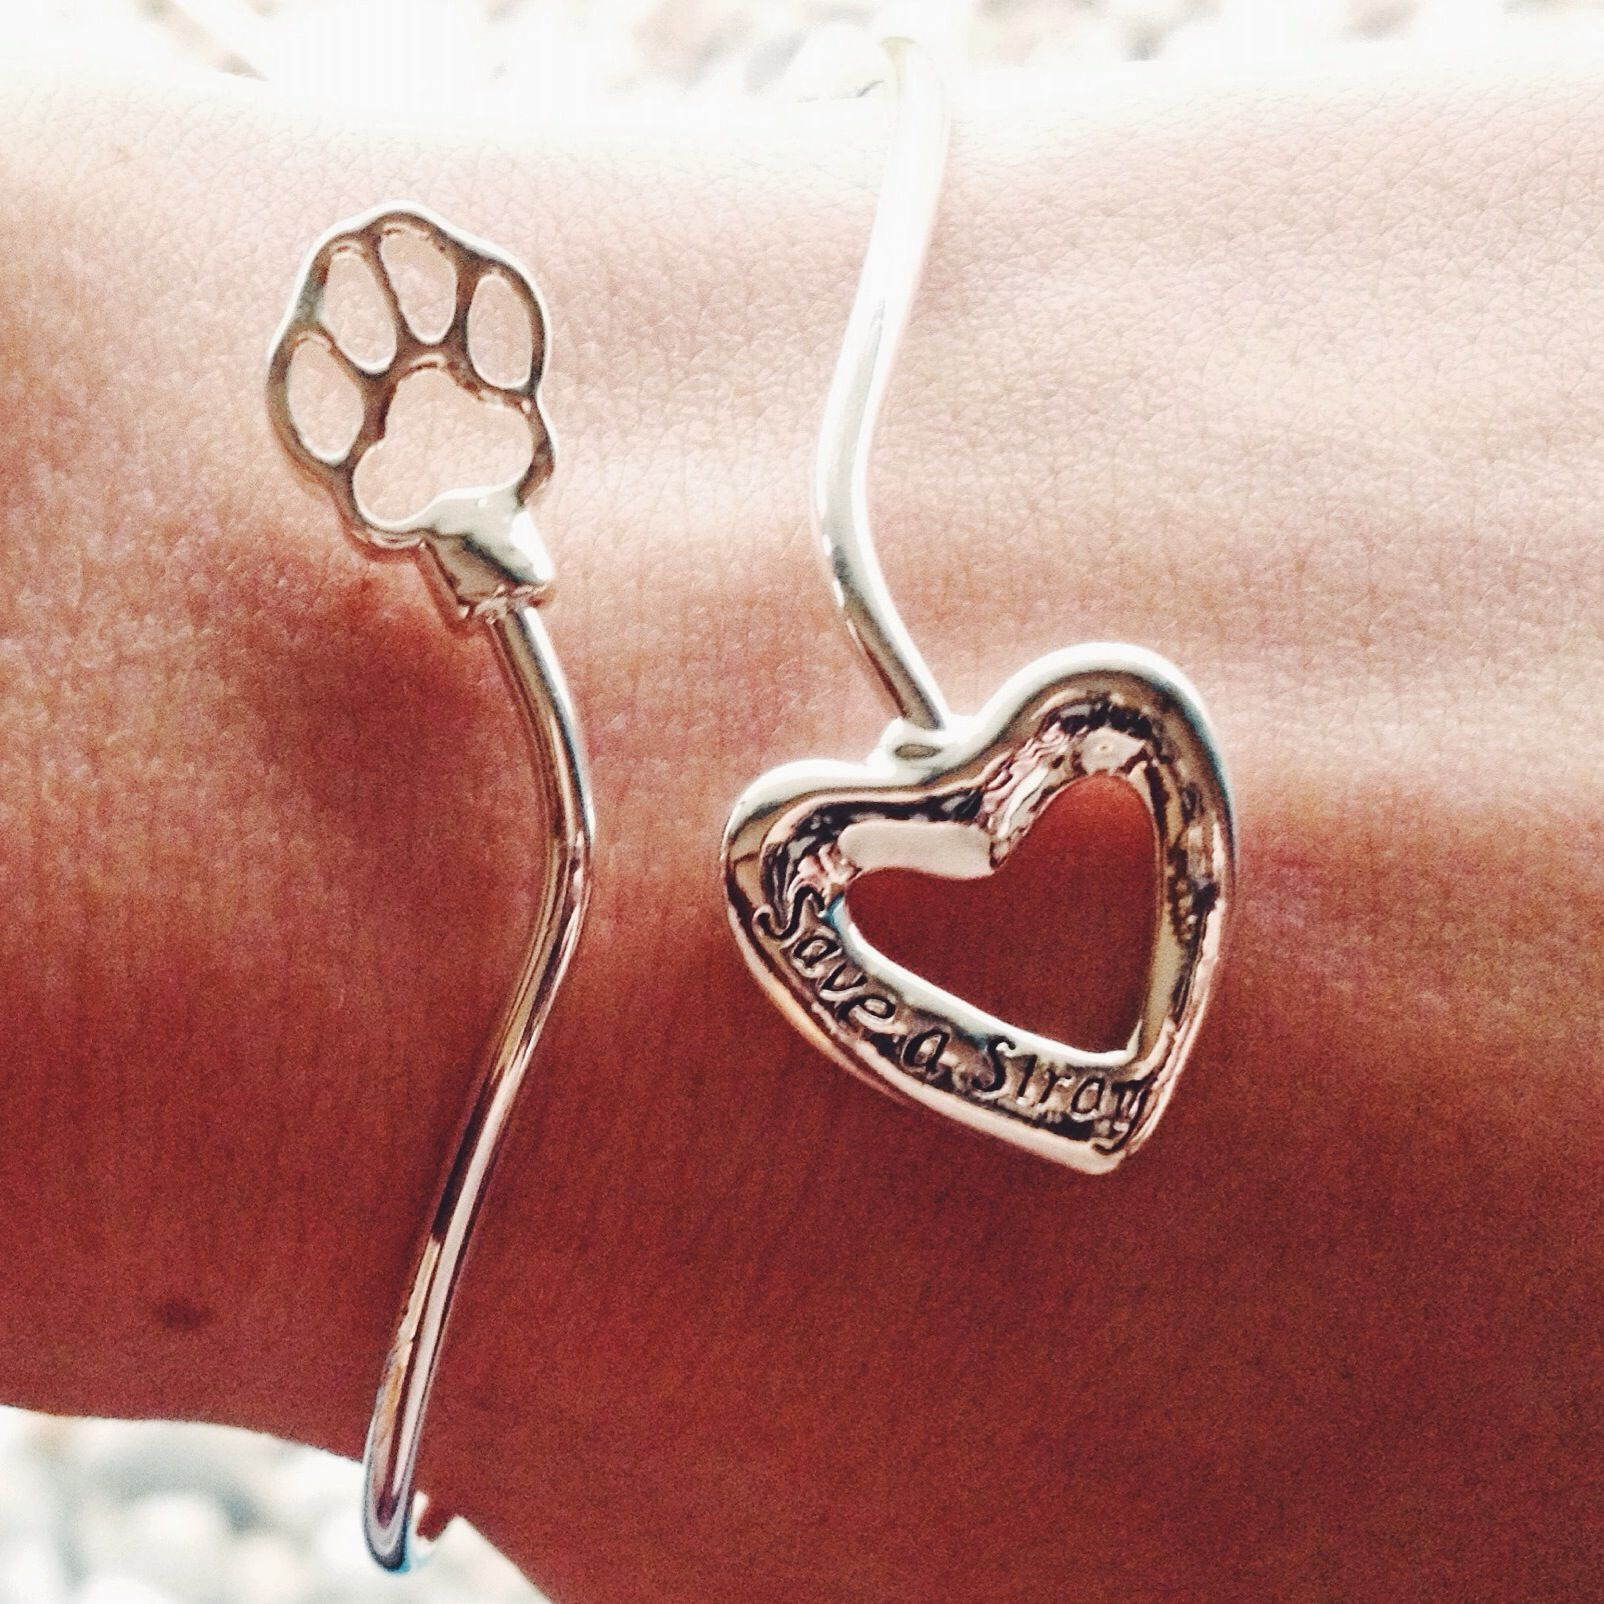 5b69373ff426 Save a Stray Bracelet- Every purchase helps animals in need!